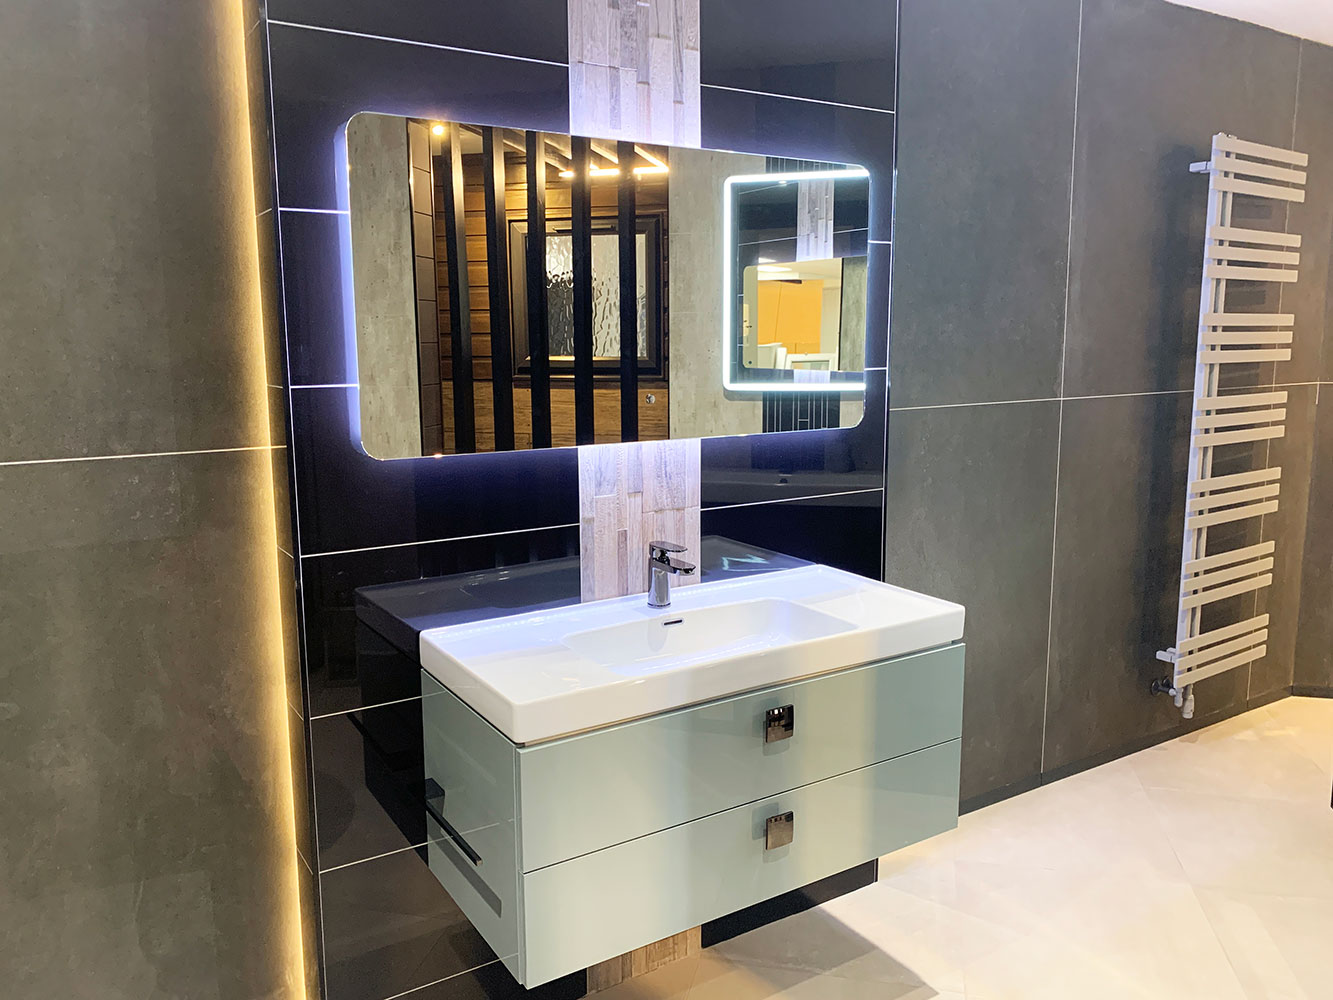 Bathroom Showroom Aberdeen: Bathroom Gallery 7, Photo 7